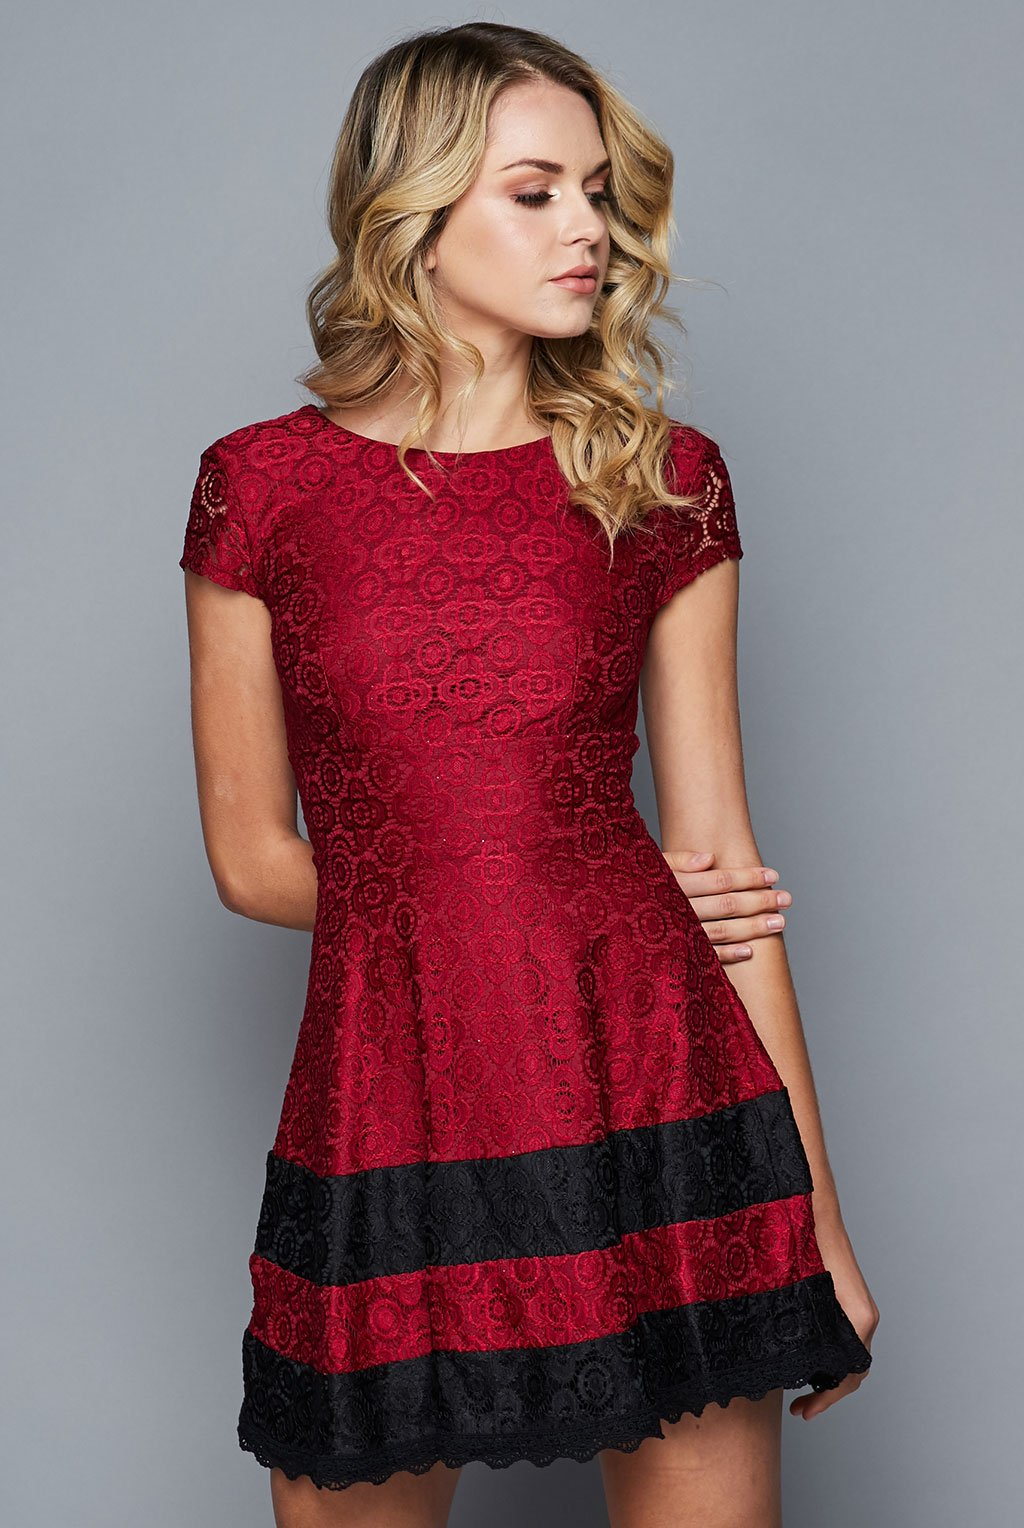 Teeze Me | Fit And Flare Lace Scallop Hem Dress  | Burgundy/Black - Teeze Me Juniors Apparel